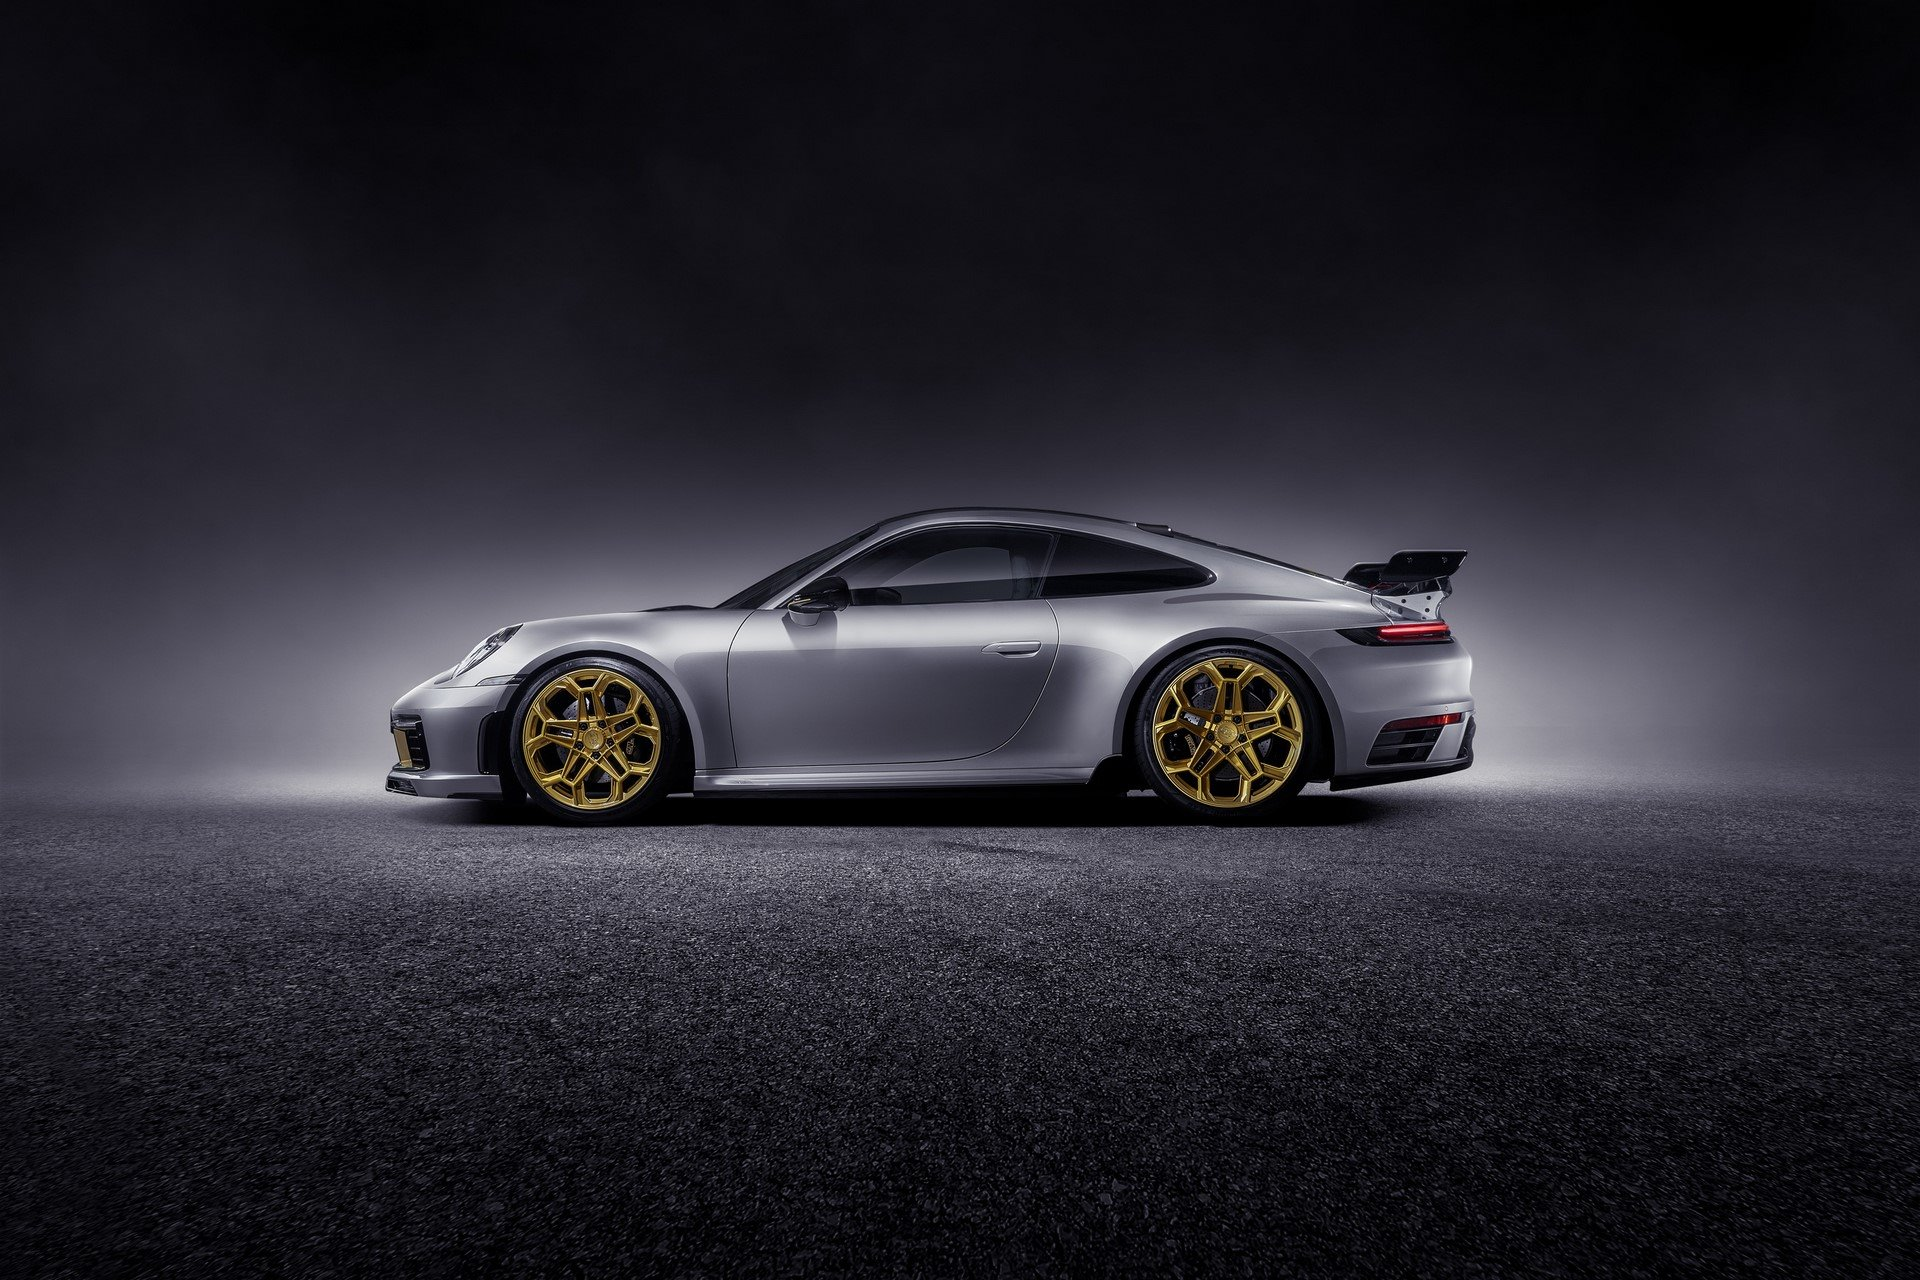 Porsche-911-Carrera-4S-by-TechArt-9